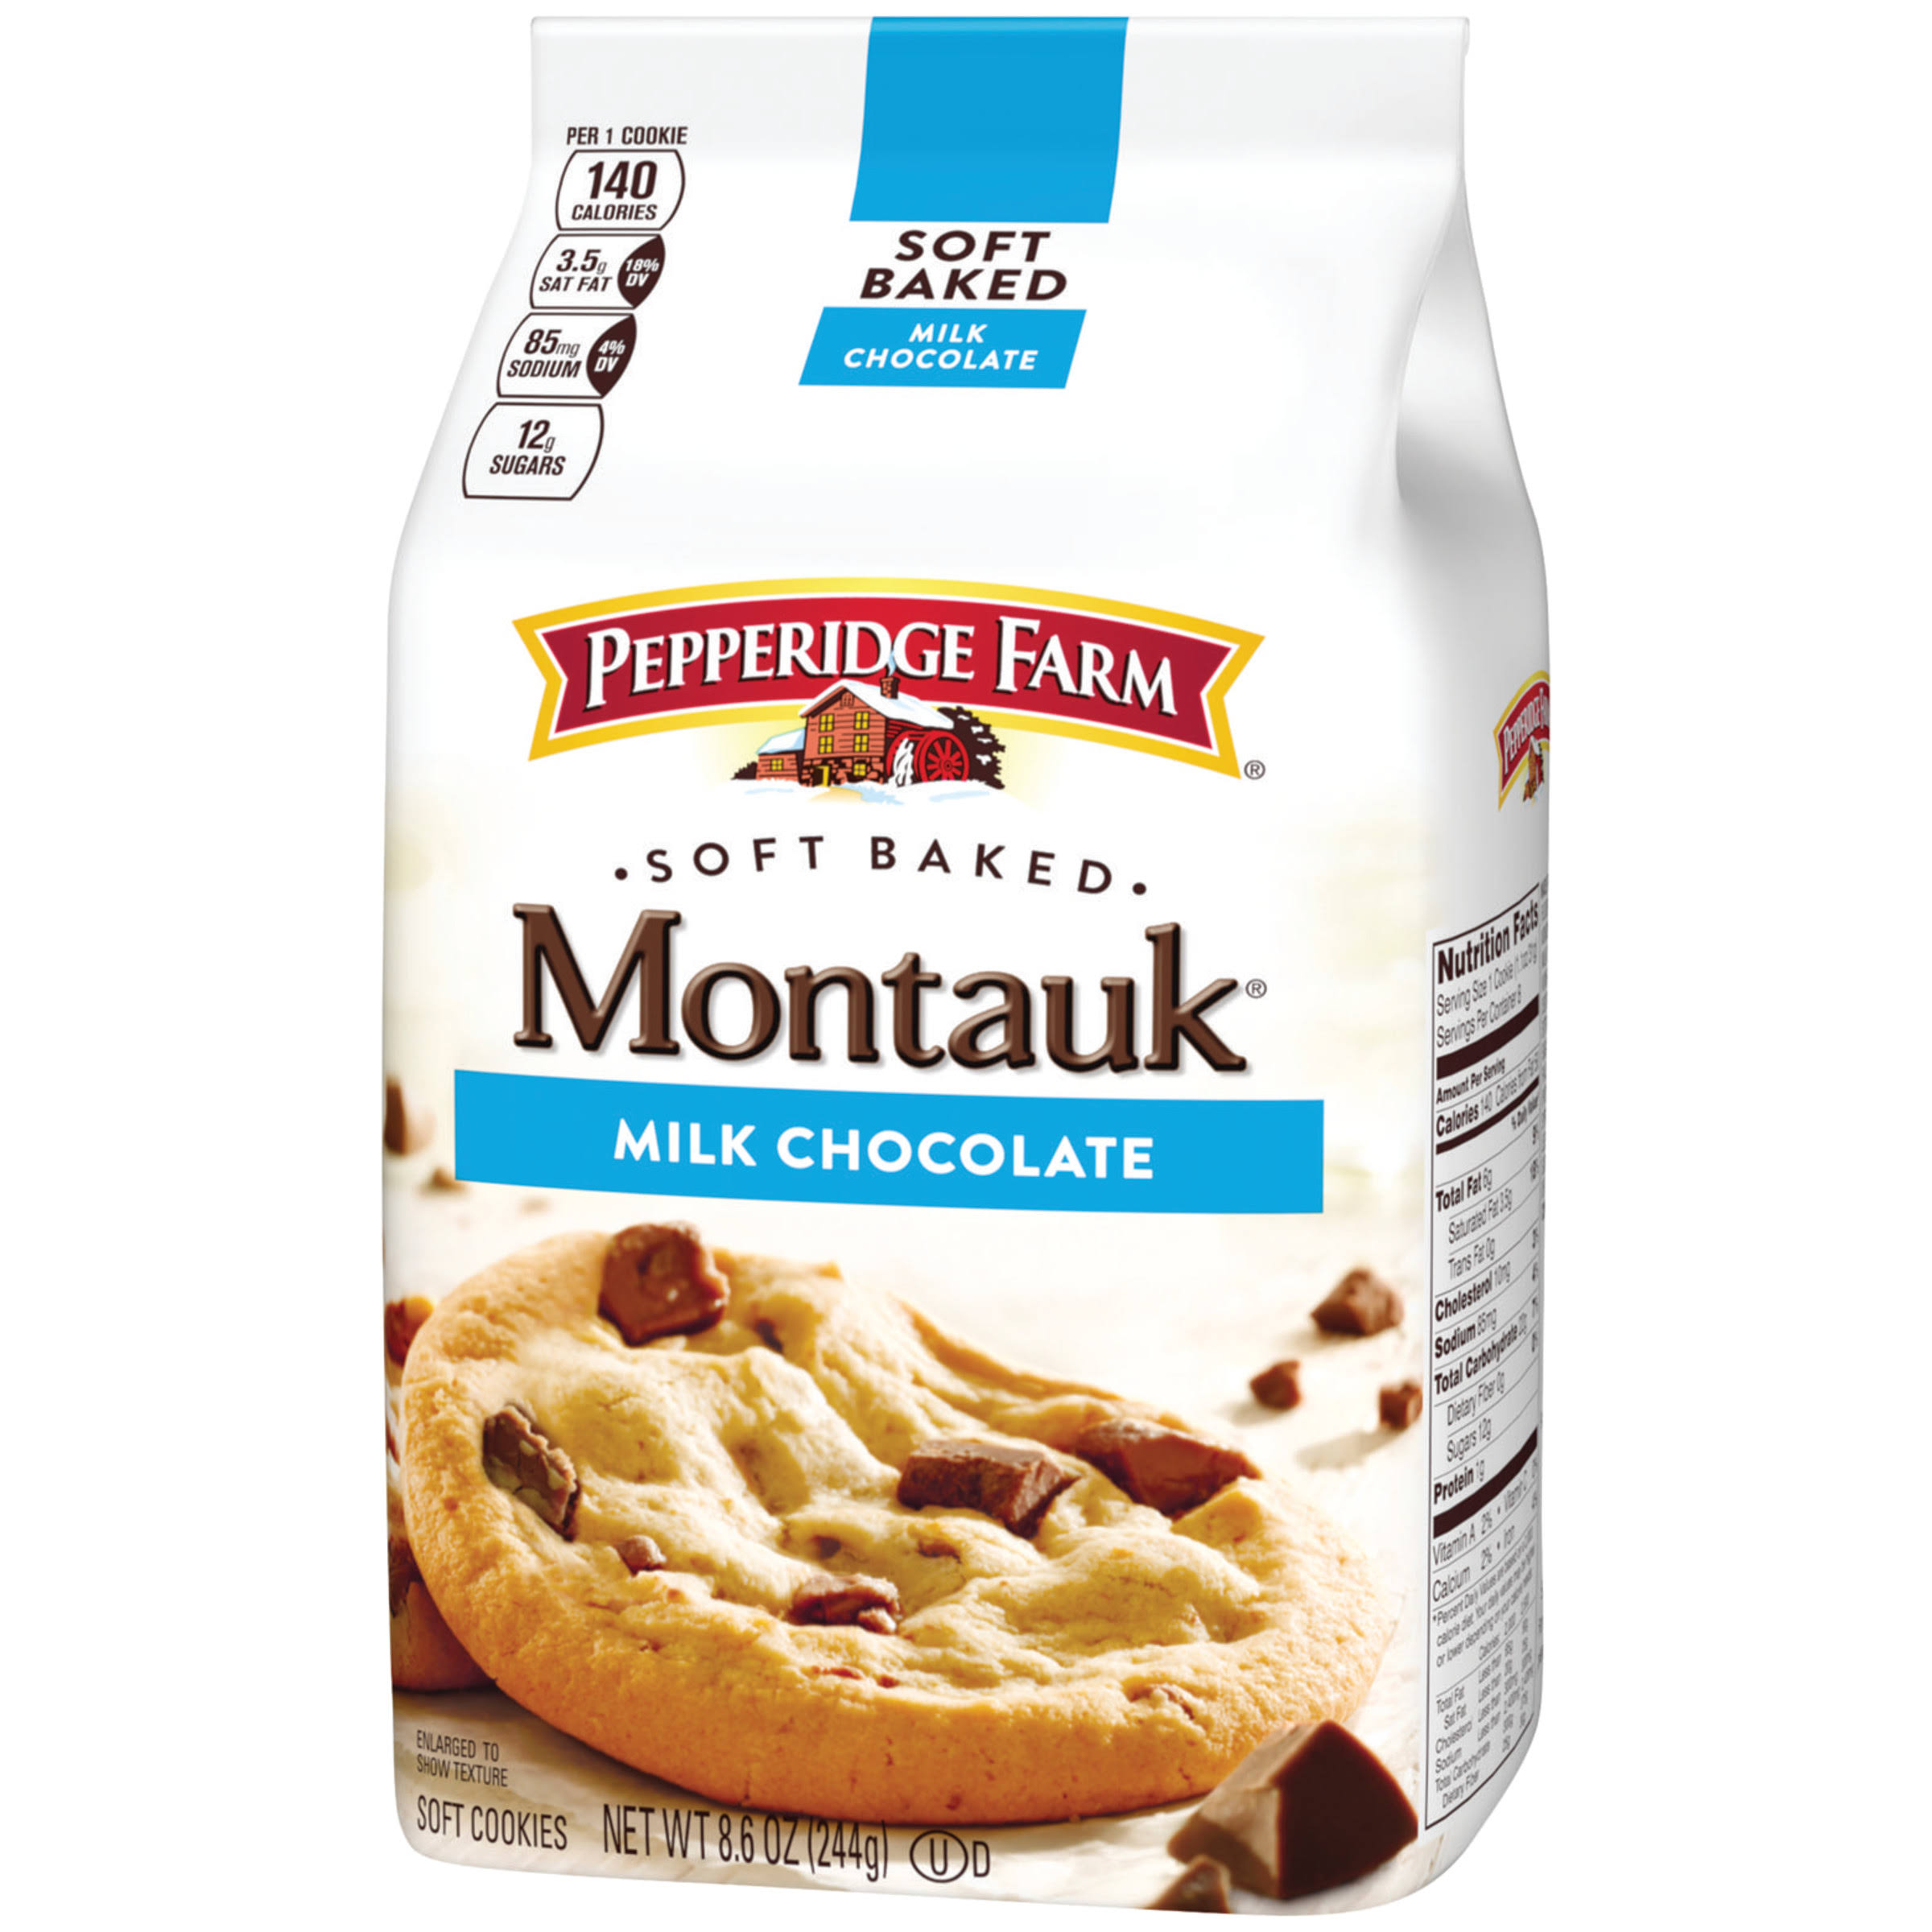 Pepperidge Farm Soft Baked Montauk Cookies - Milk Chocolate, 244g